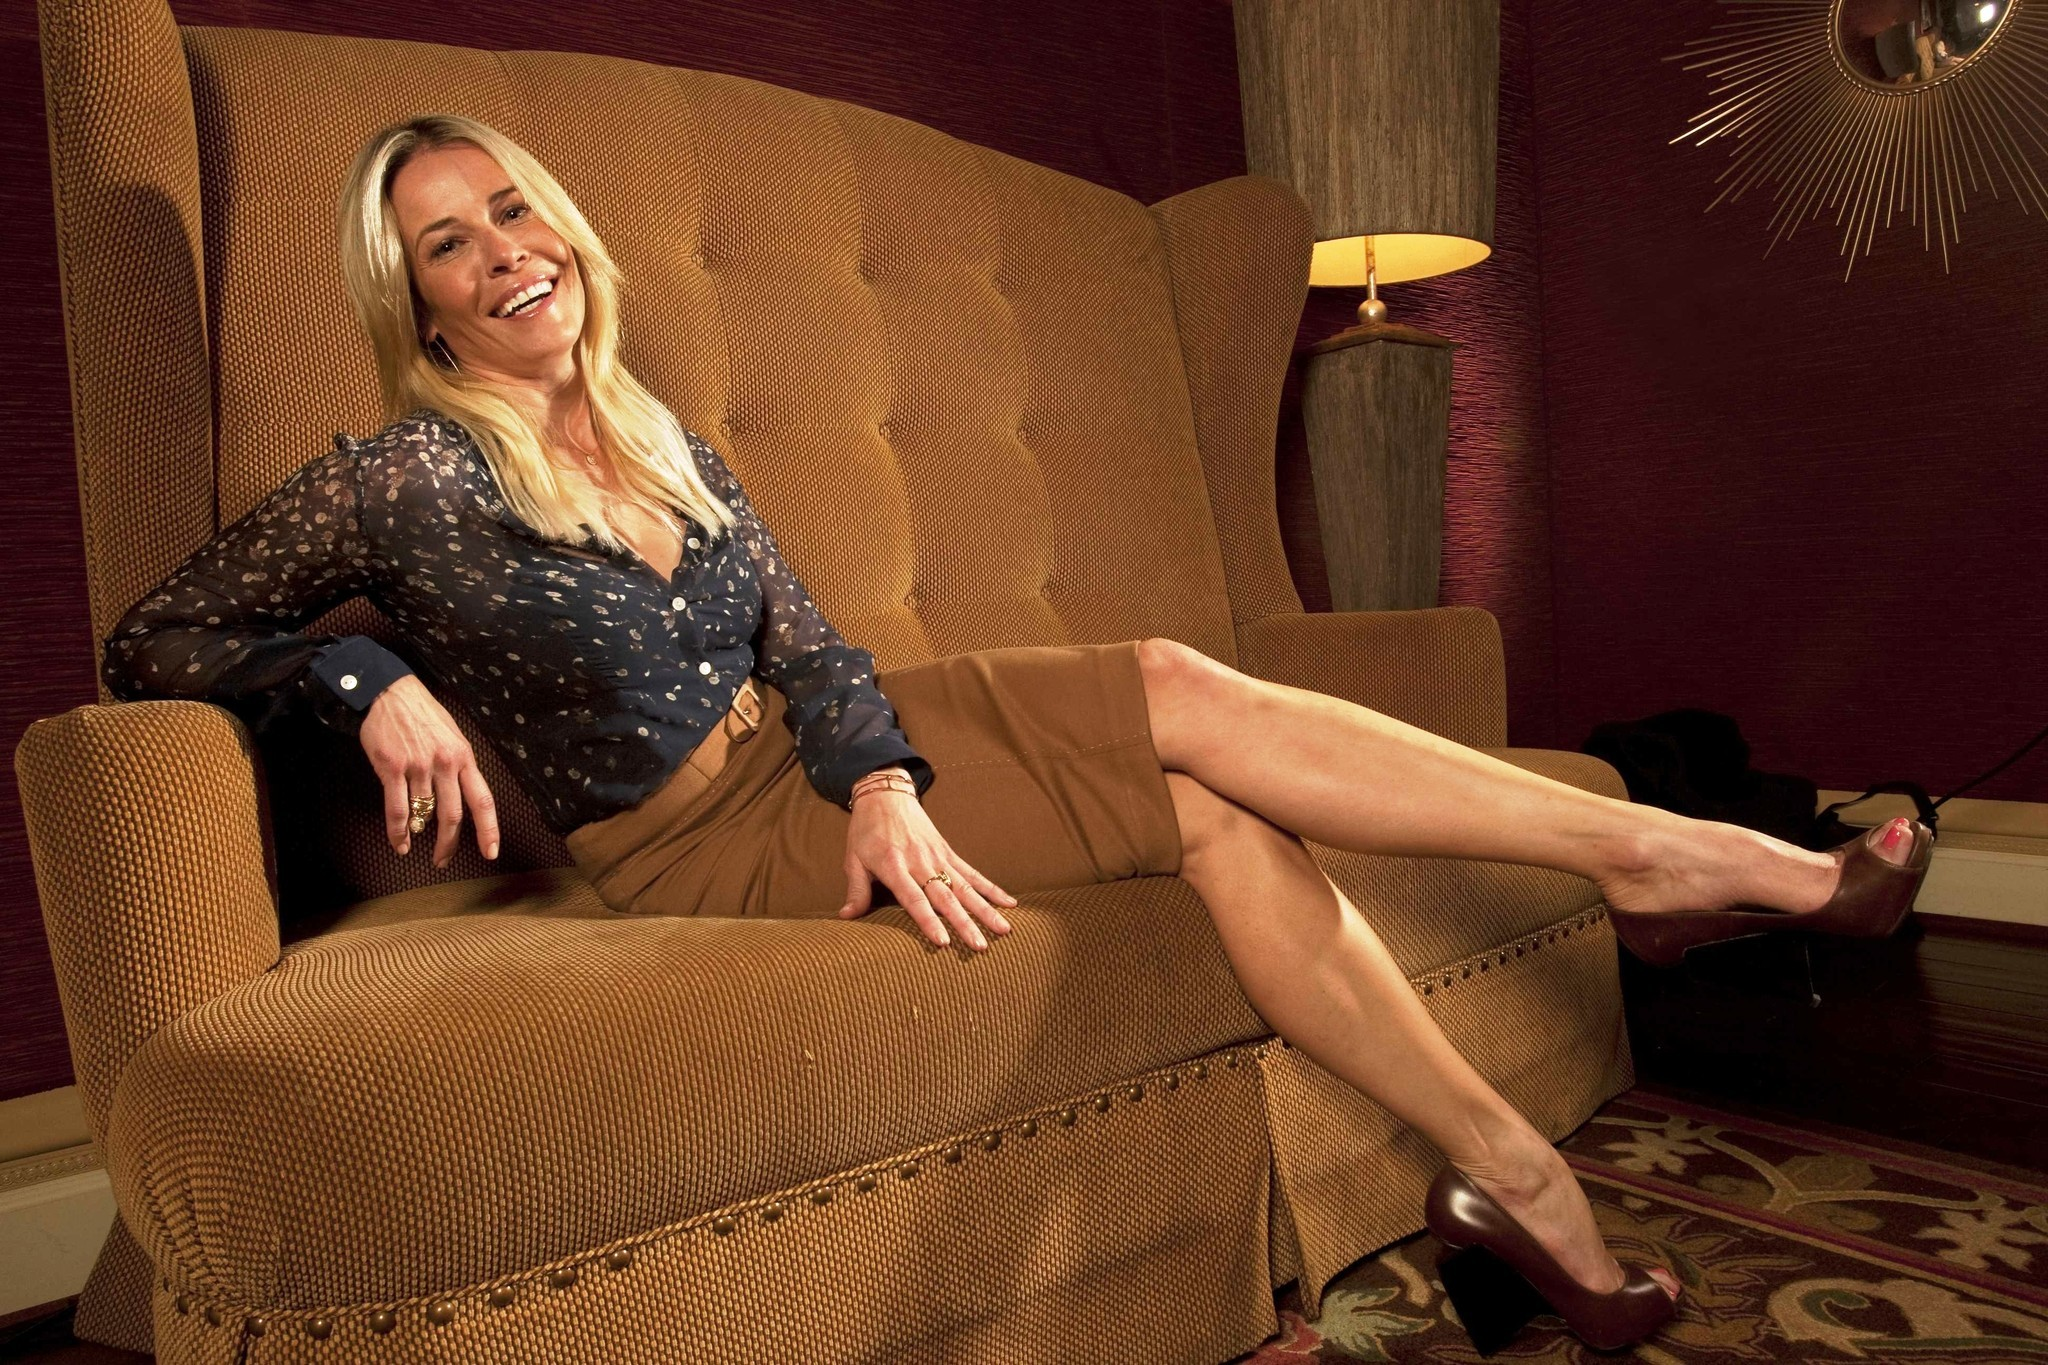 Chelsea Handler On Late-night Television